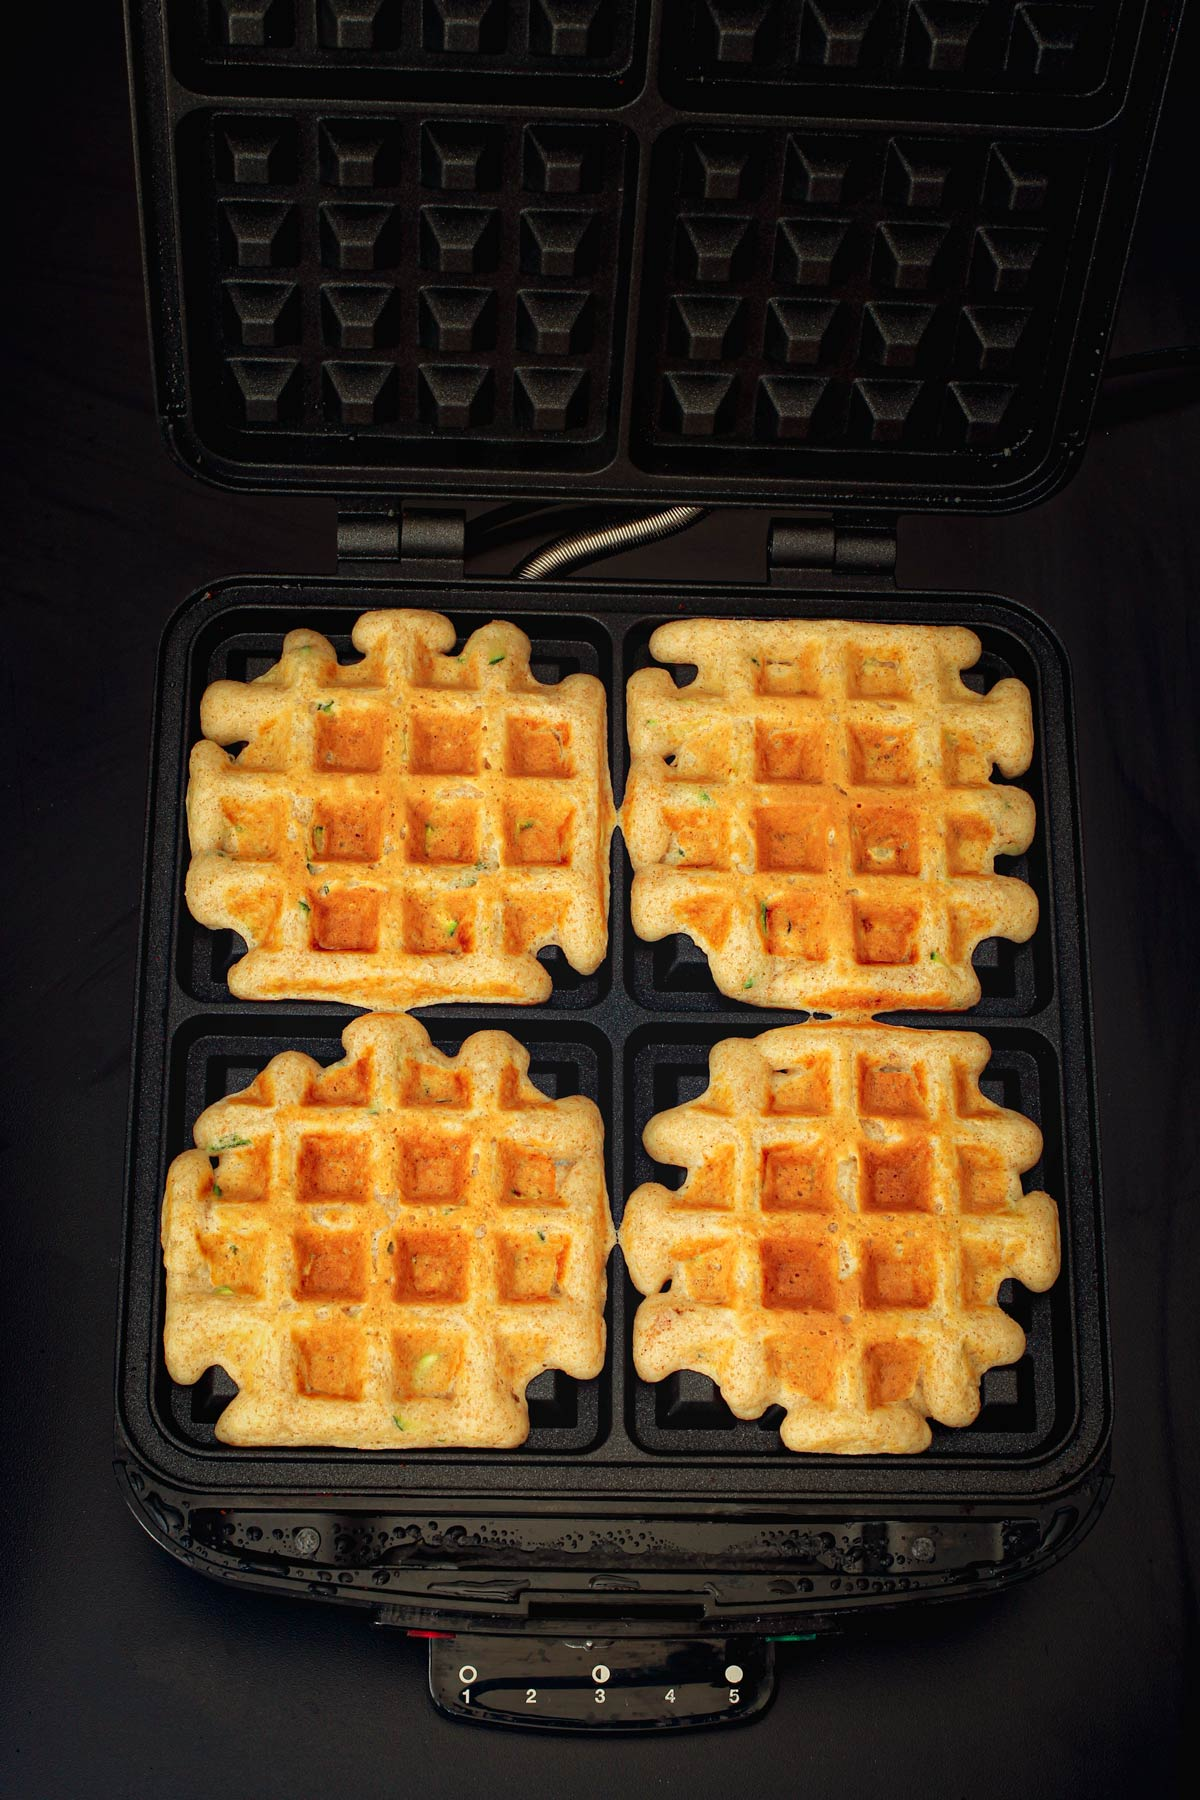 cooked waffles in open waffle iron.